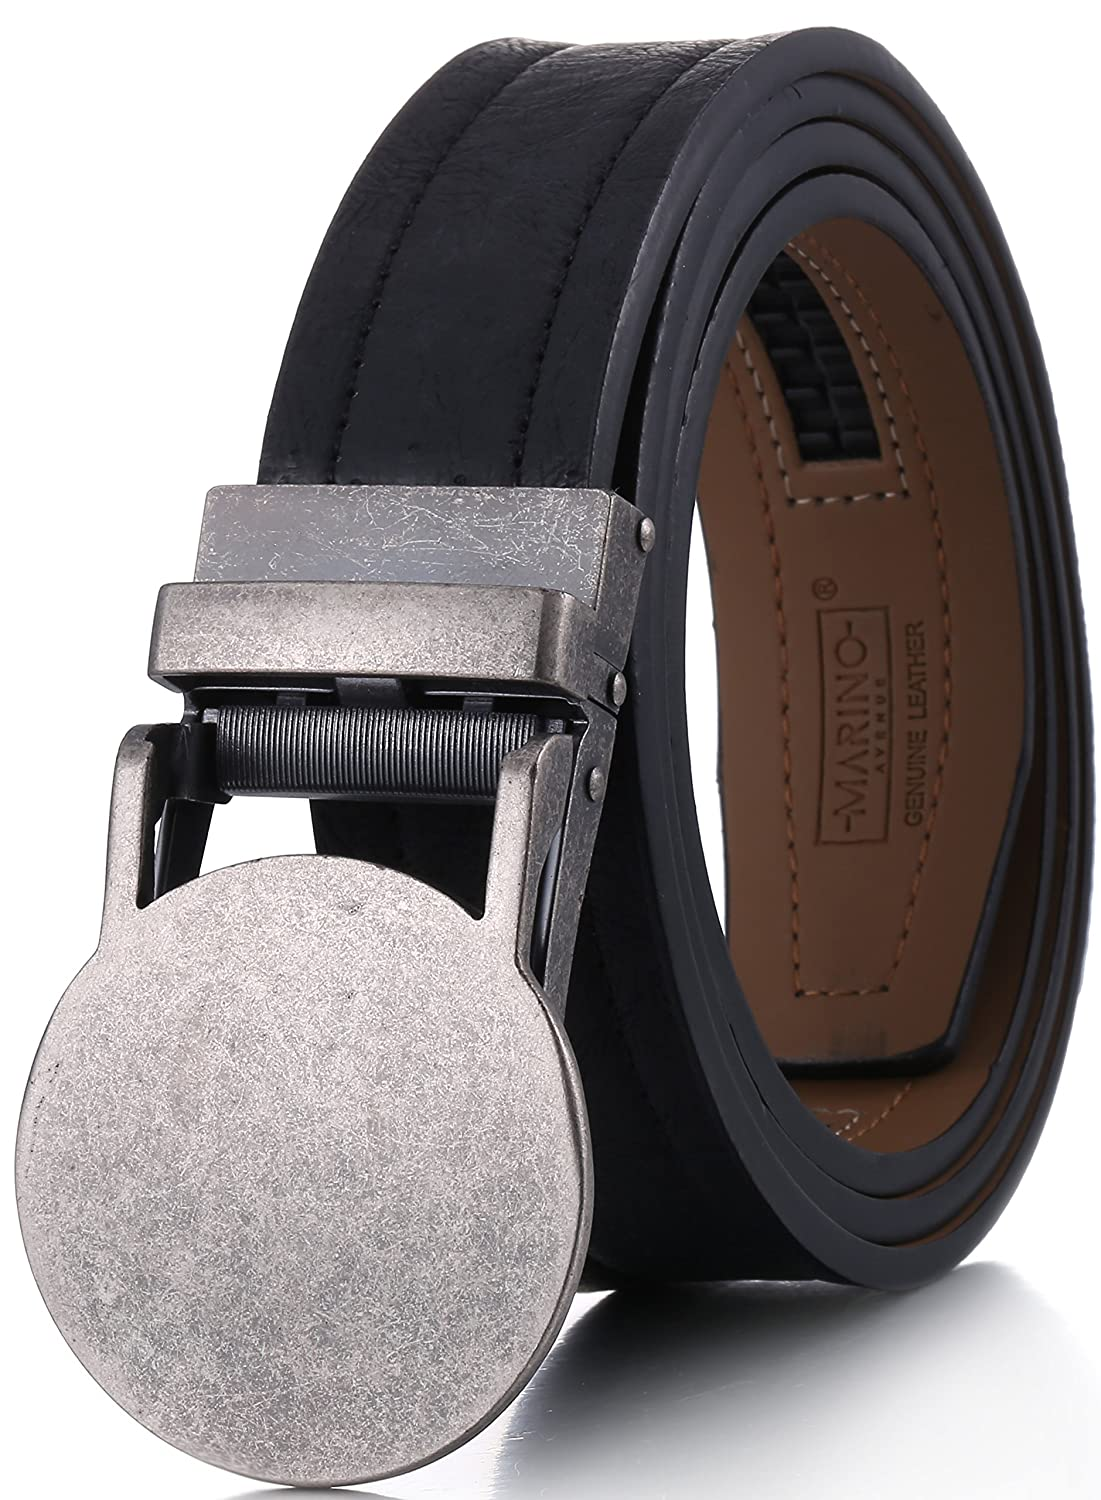 Marino Avenue Genuine Leather belt for Men, 1.3/8 Wide, Casual Ratchet Belt with Automatic Linxx Buckle 1.3/8 Wide